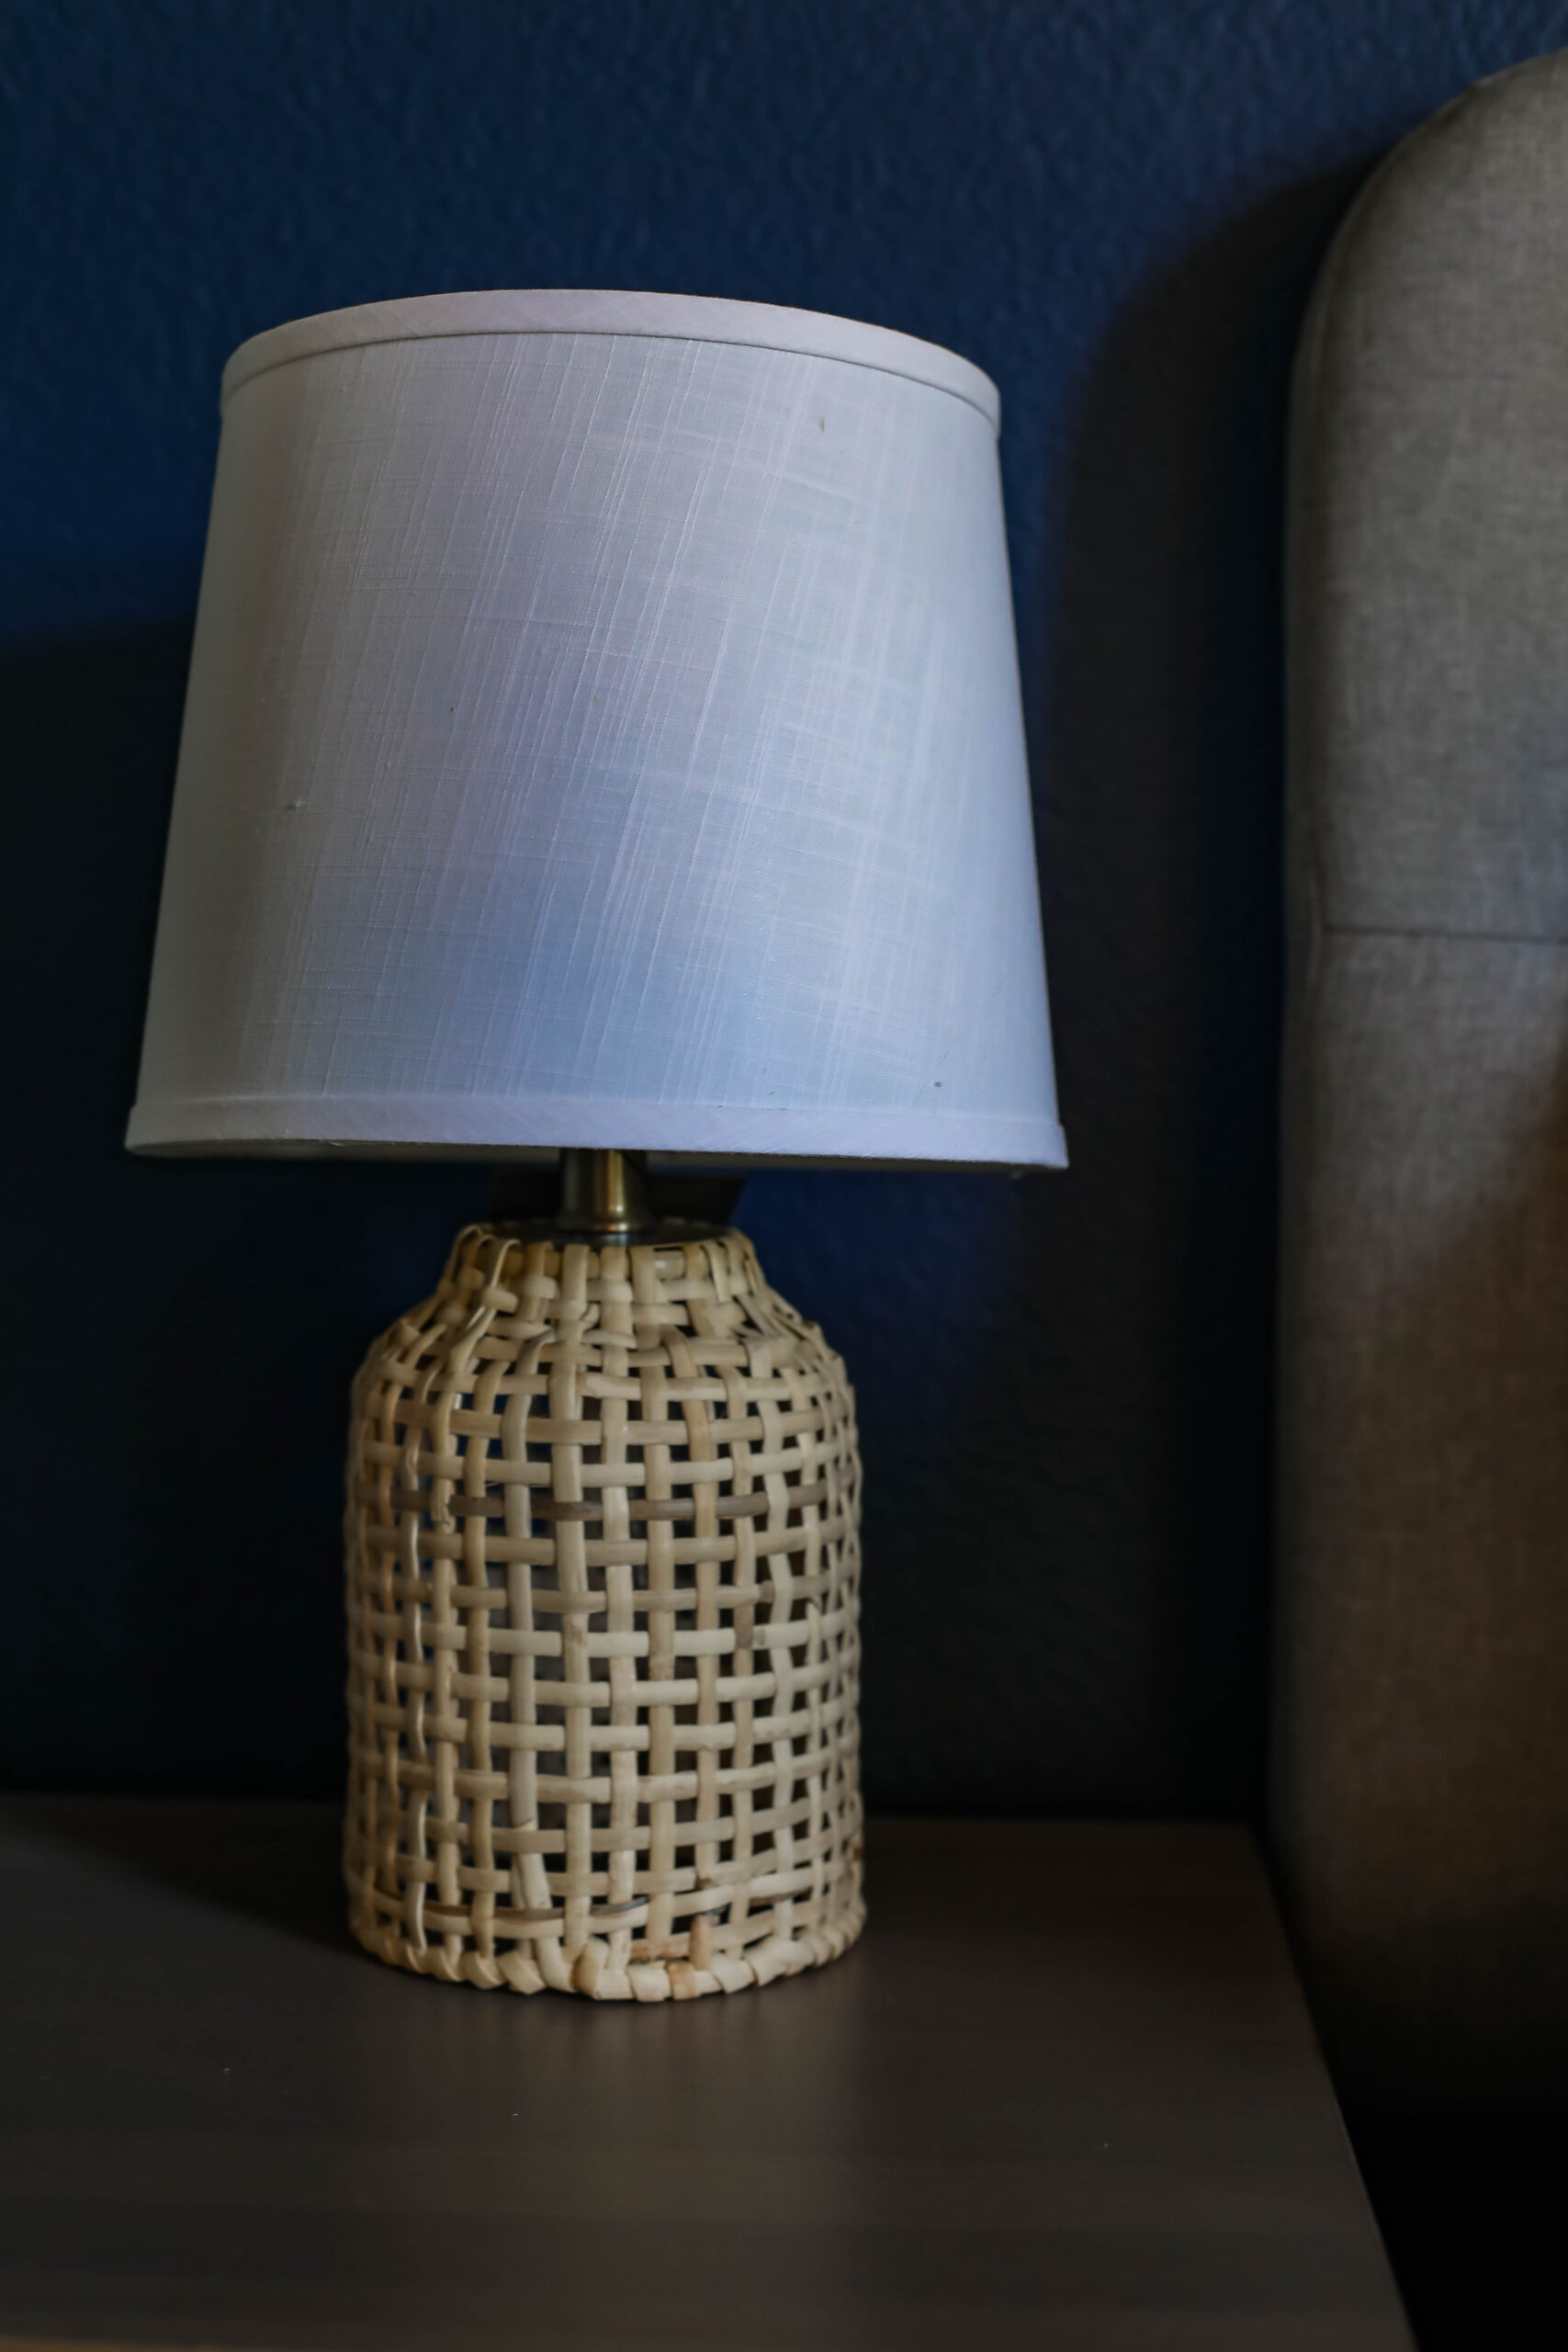 This rattan lamp is a KILLER price and a simple way to update a bedroom!